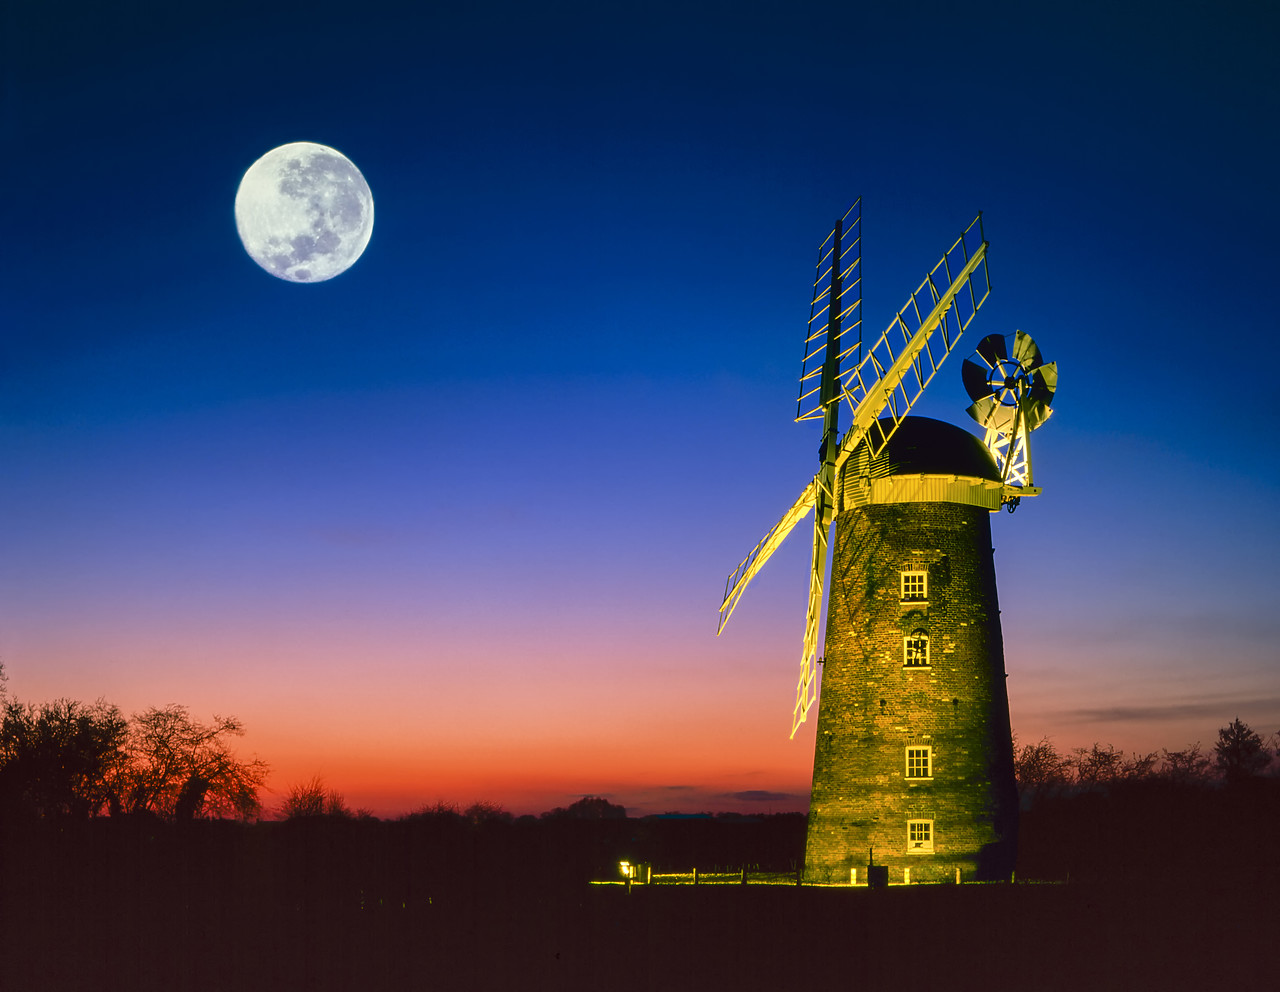 #400144-1 - Full Moon over Dereham Mill, Dereham, Norfolk, England